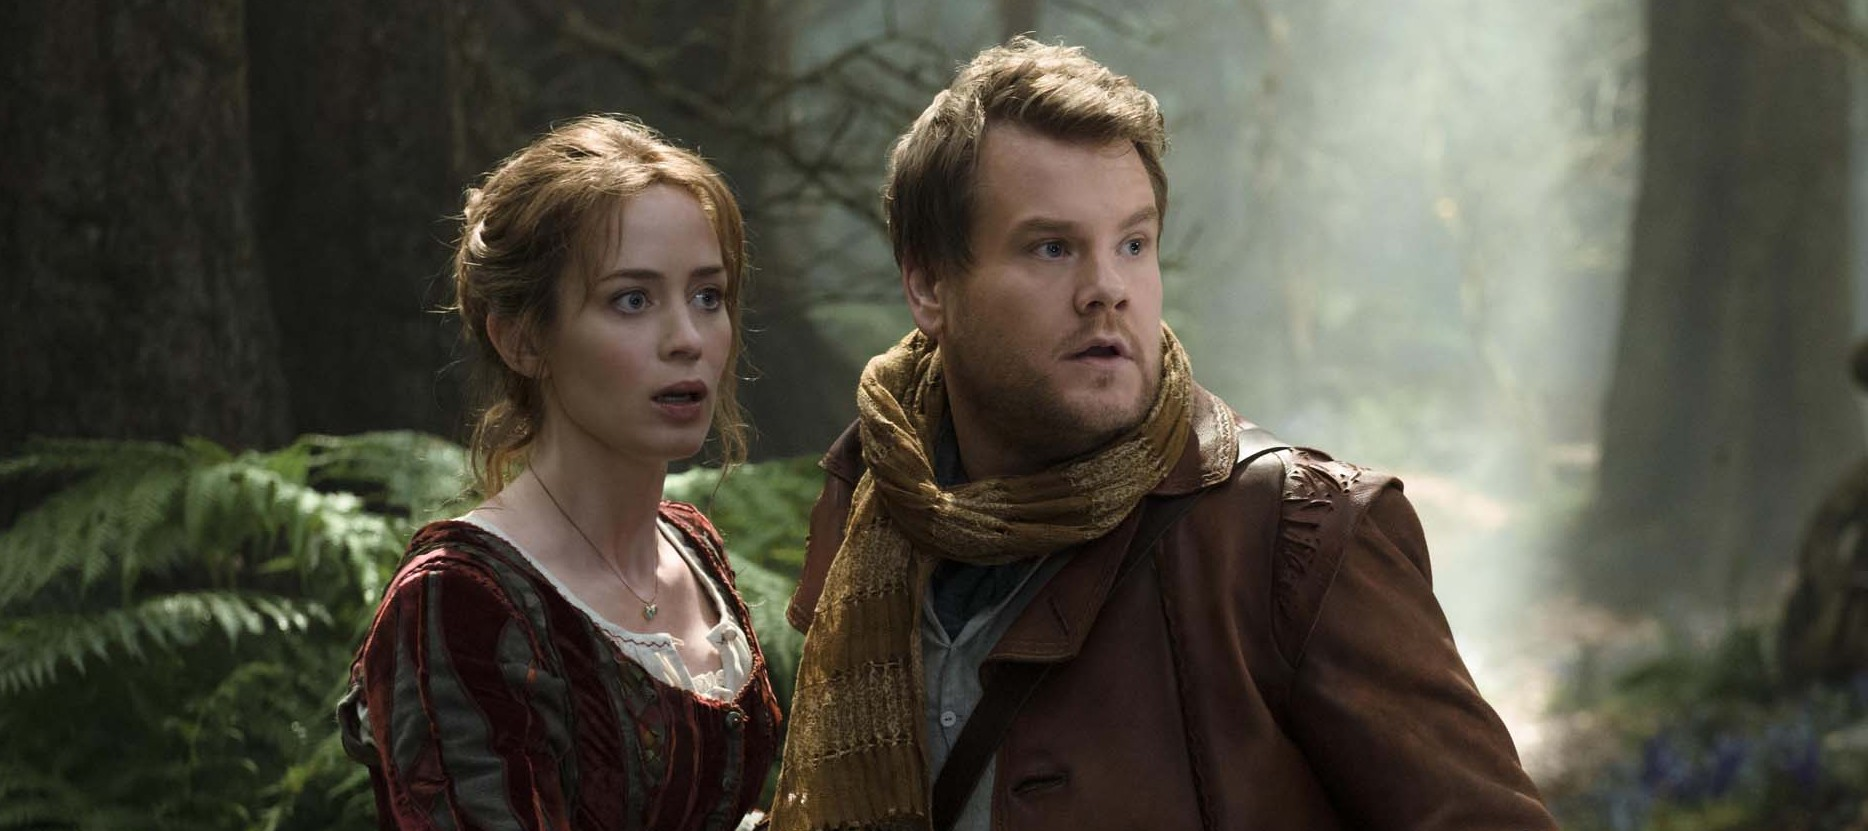 'Into the Woods': Emily Blunt on Singing for Stephen Sondheim